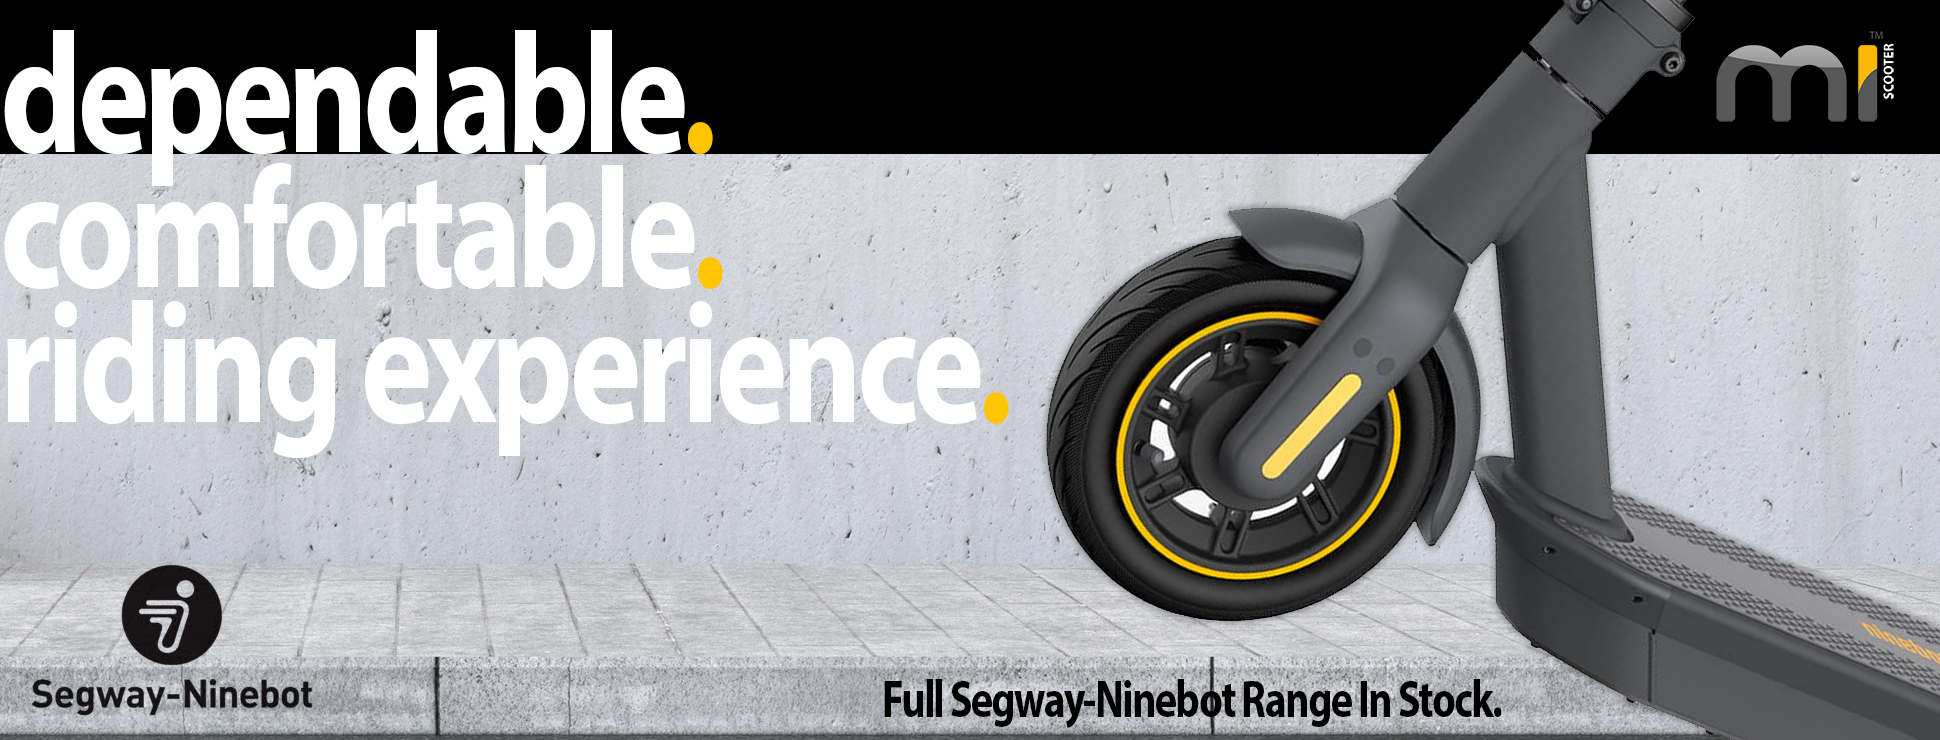 Segway - Electric Scooter Range - dependable and comfortable riding experience.